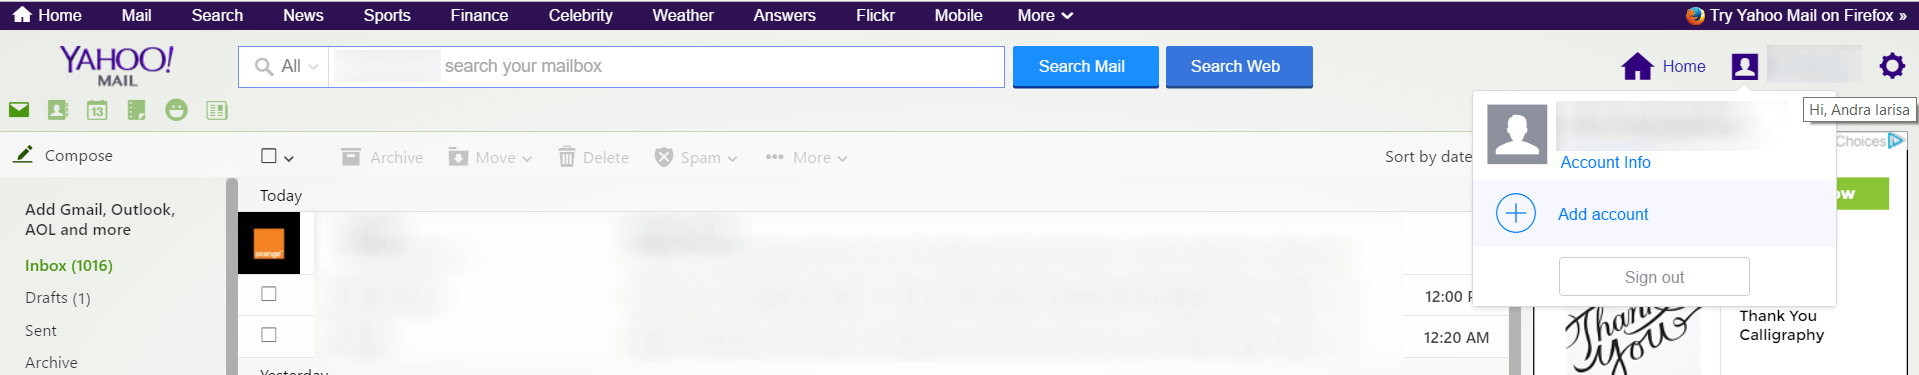 yahoo-mail-security-1